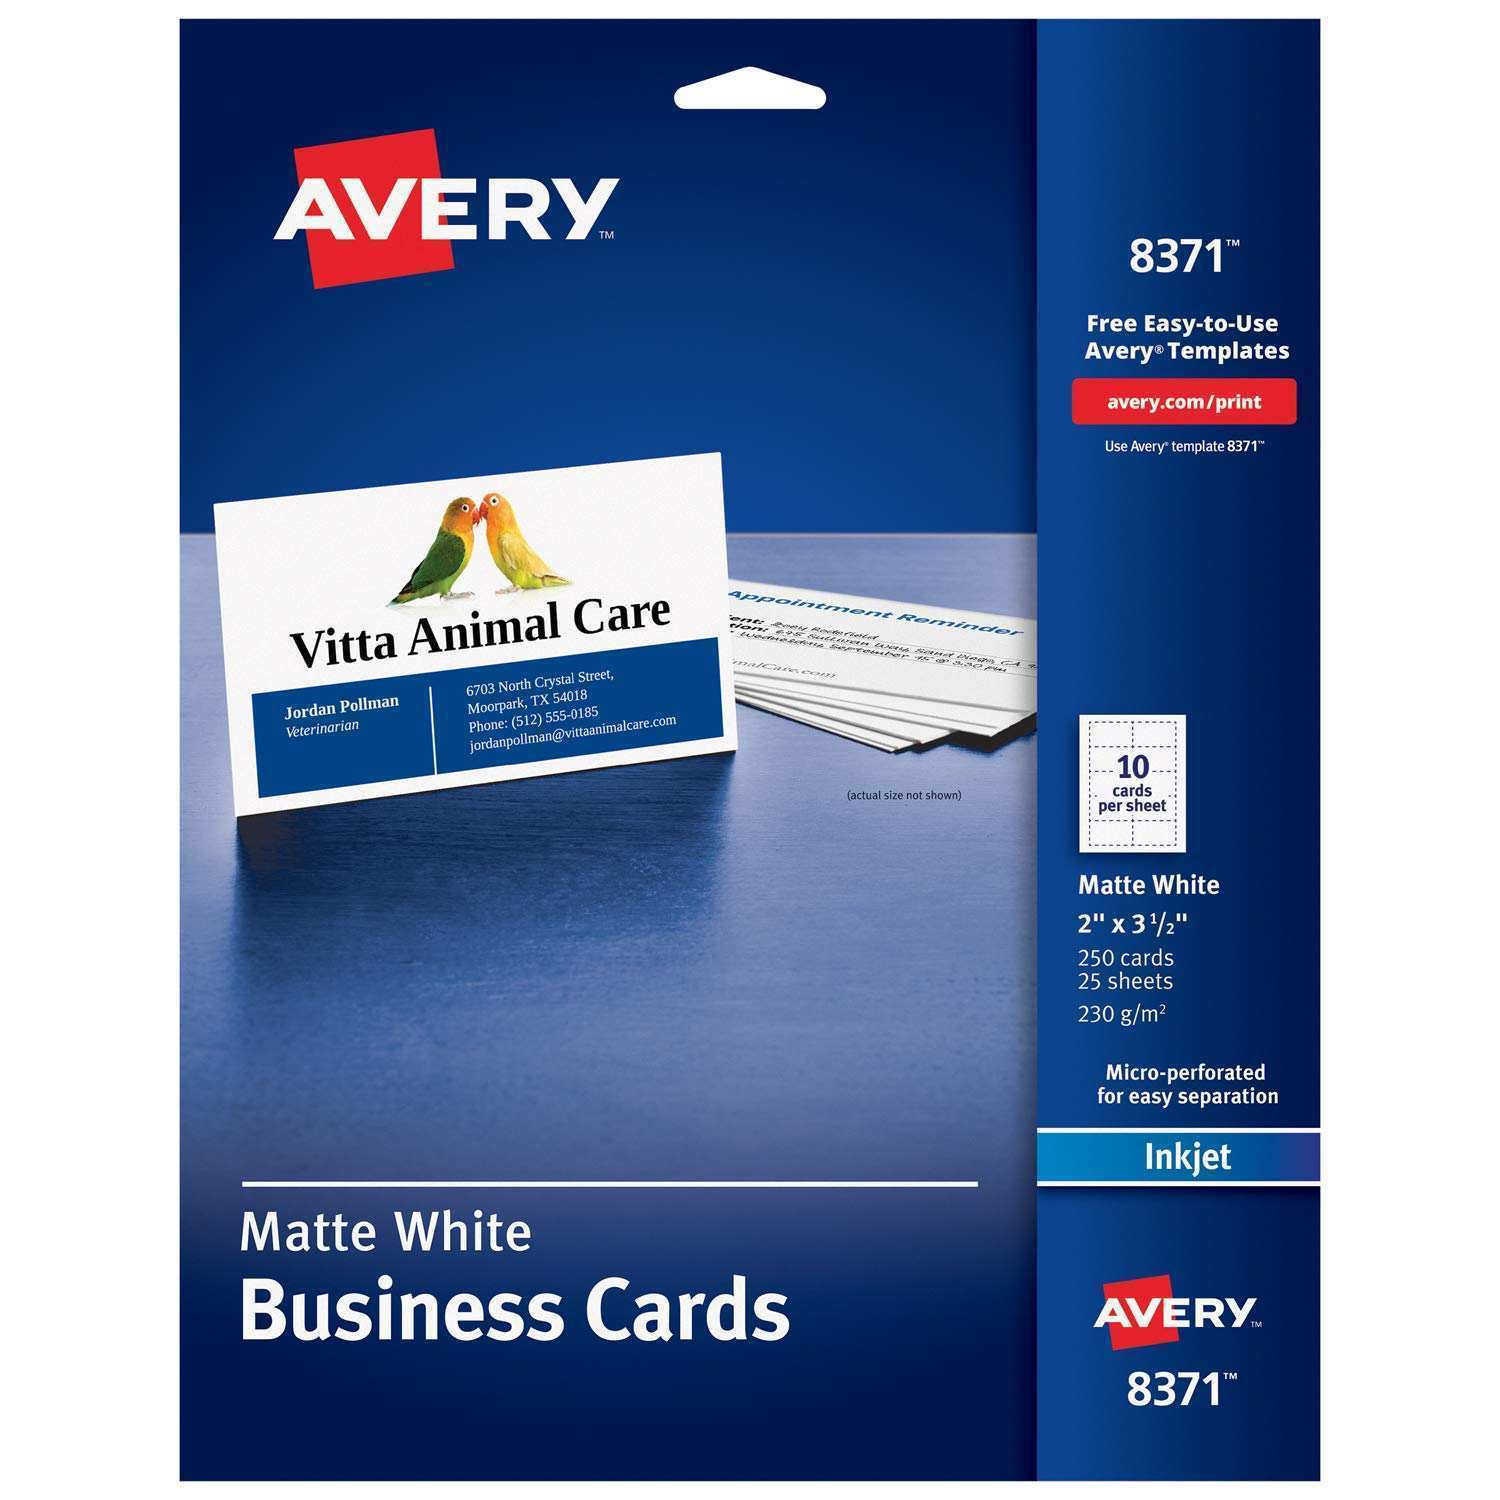 63 Creative How To Use Avery Business Card Template PSD File with How To Use Avery Business Card Template